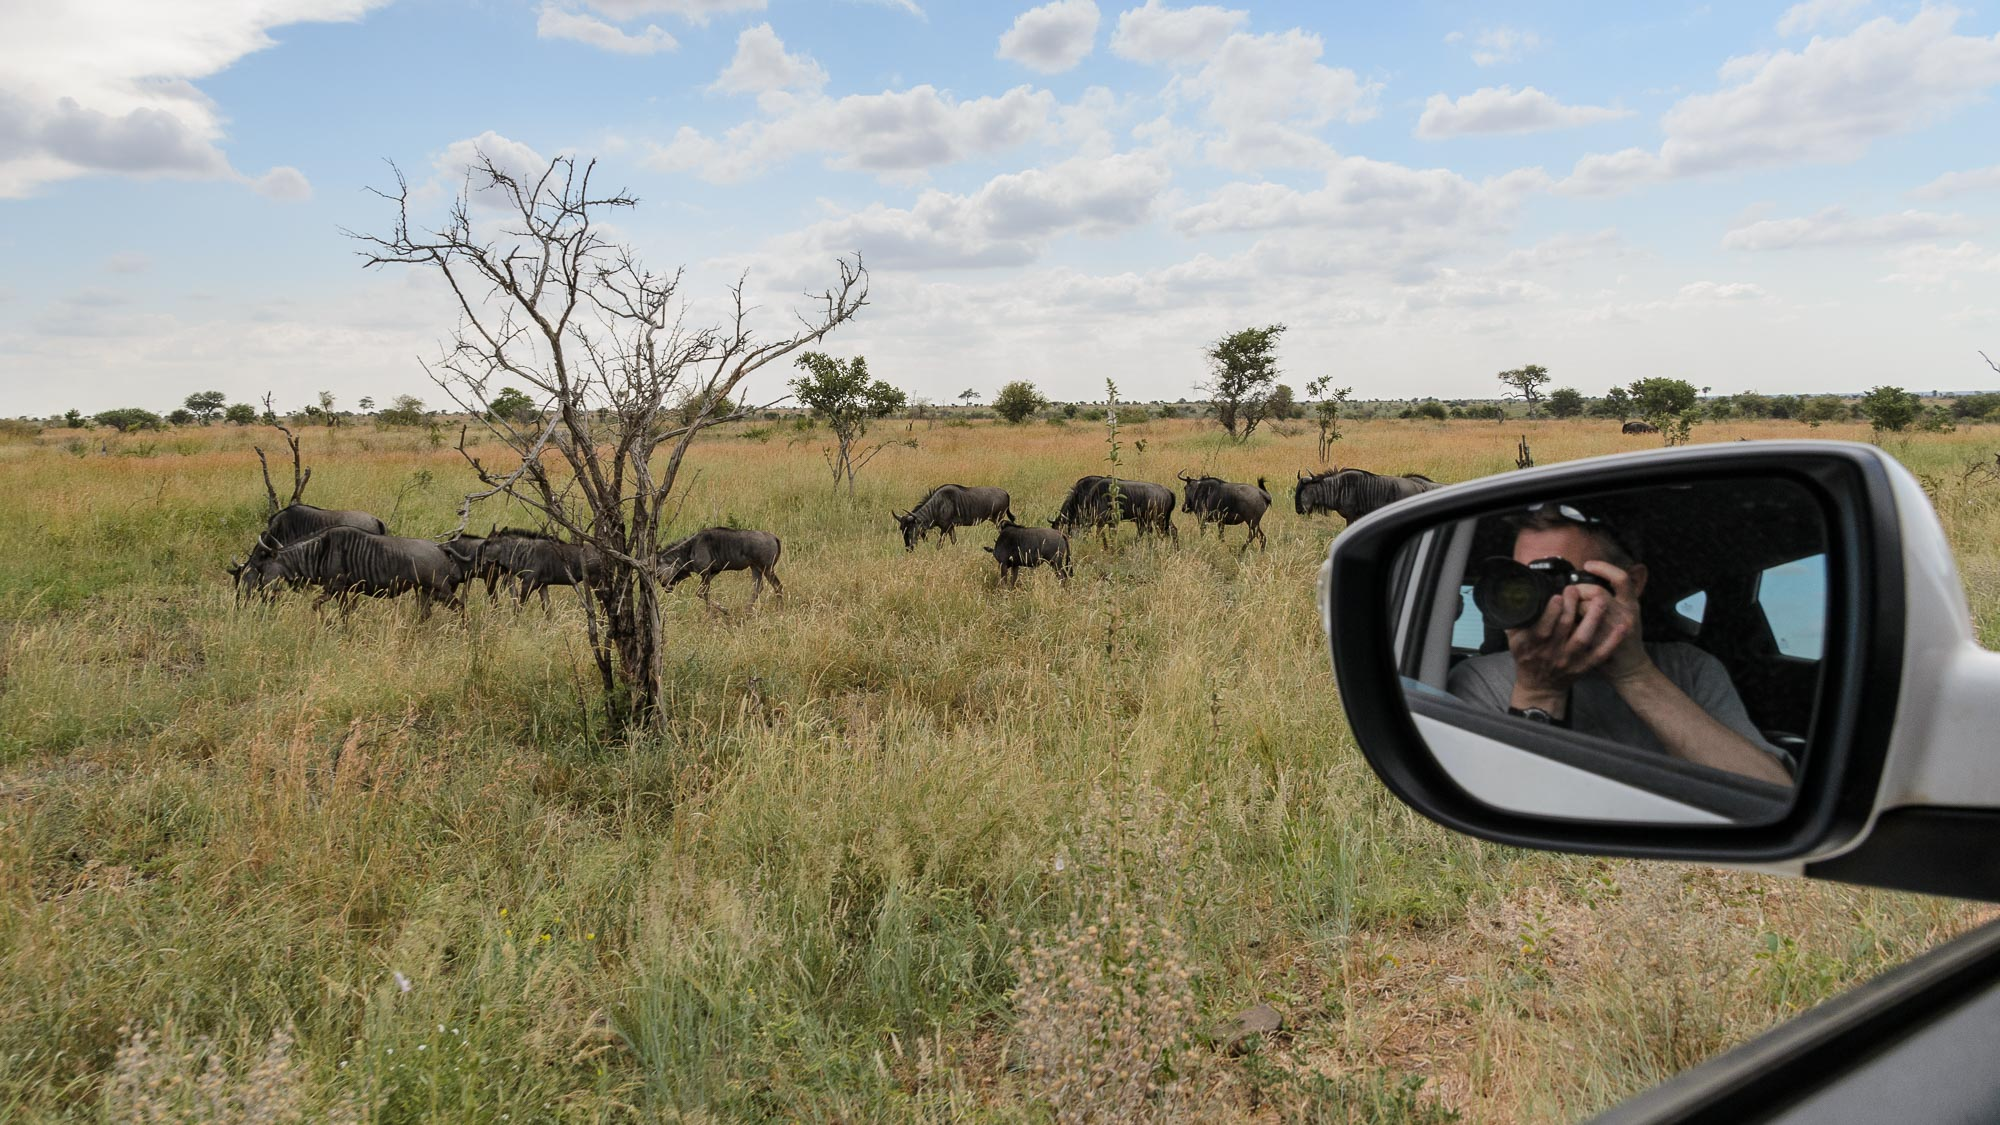 This is me putting in a cameo role with the wildebeest herd.